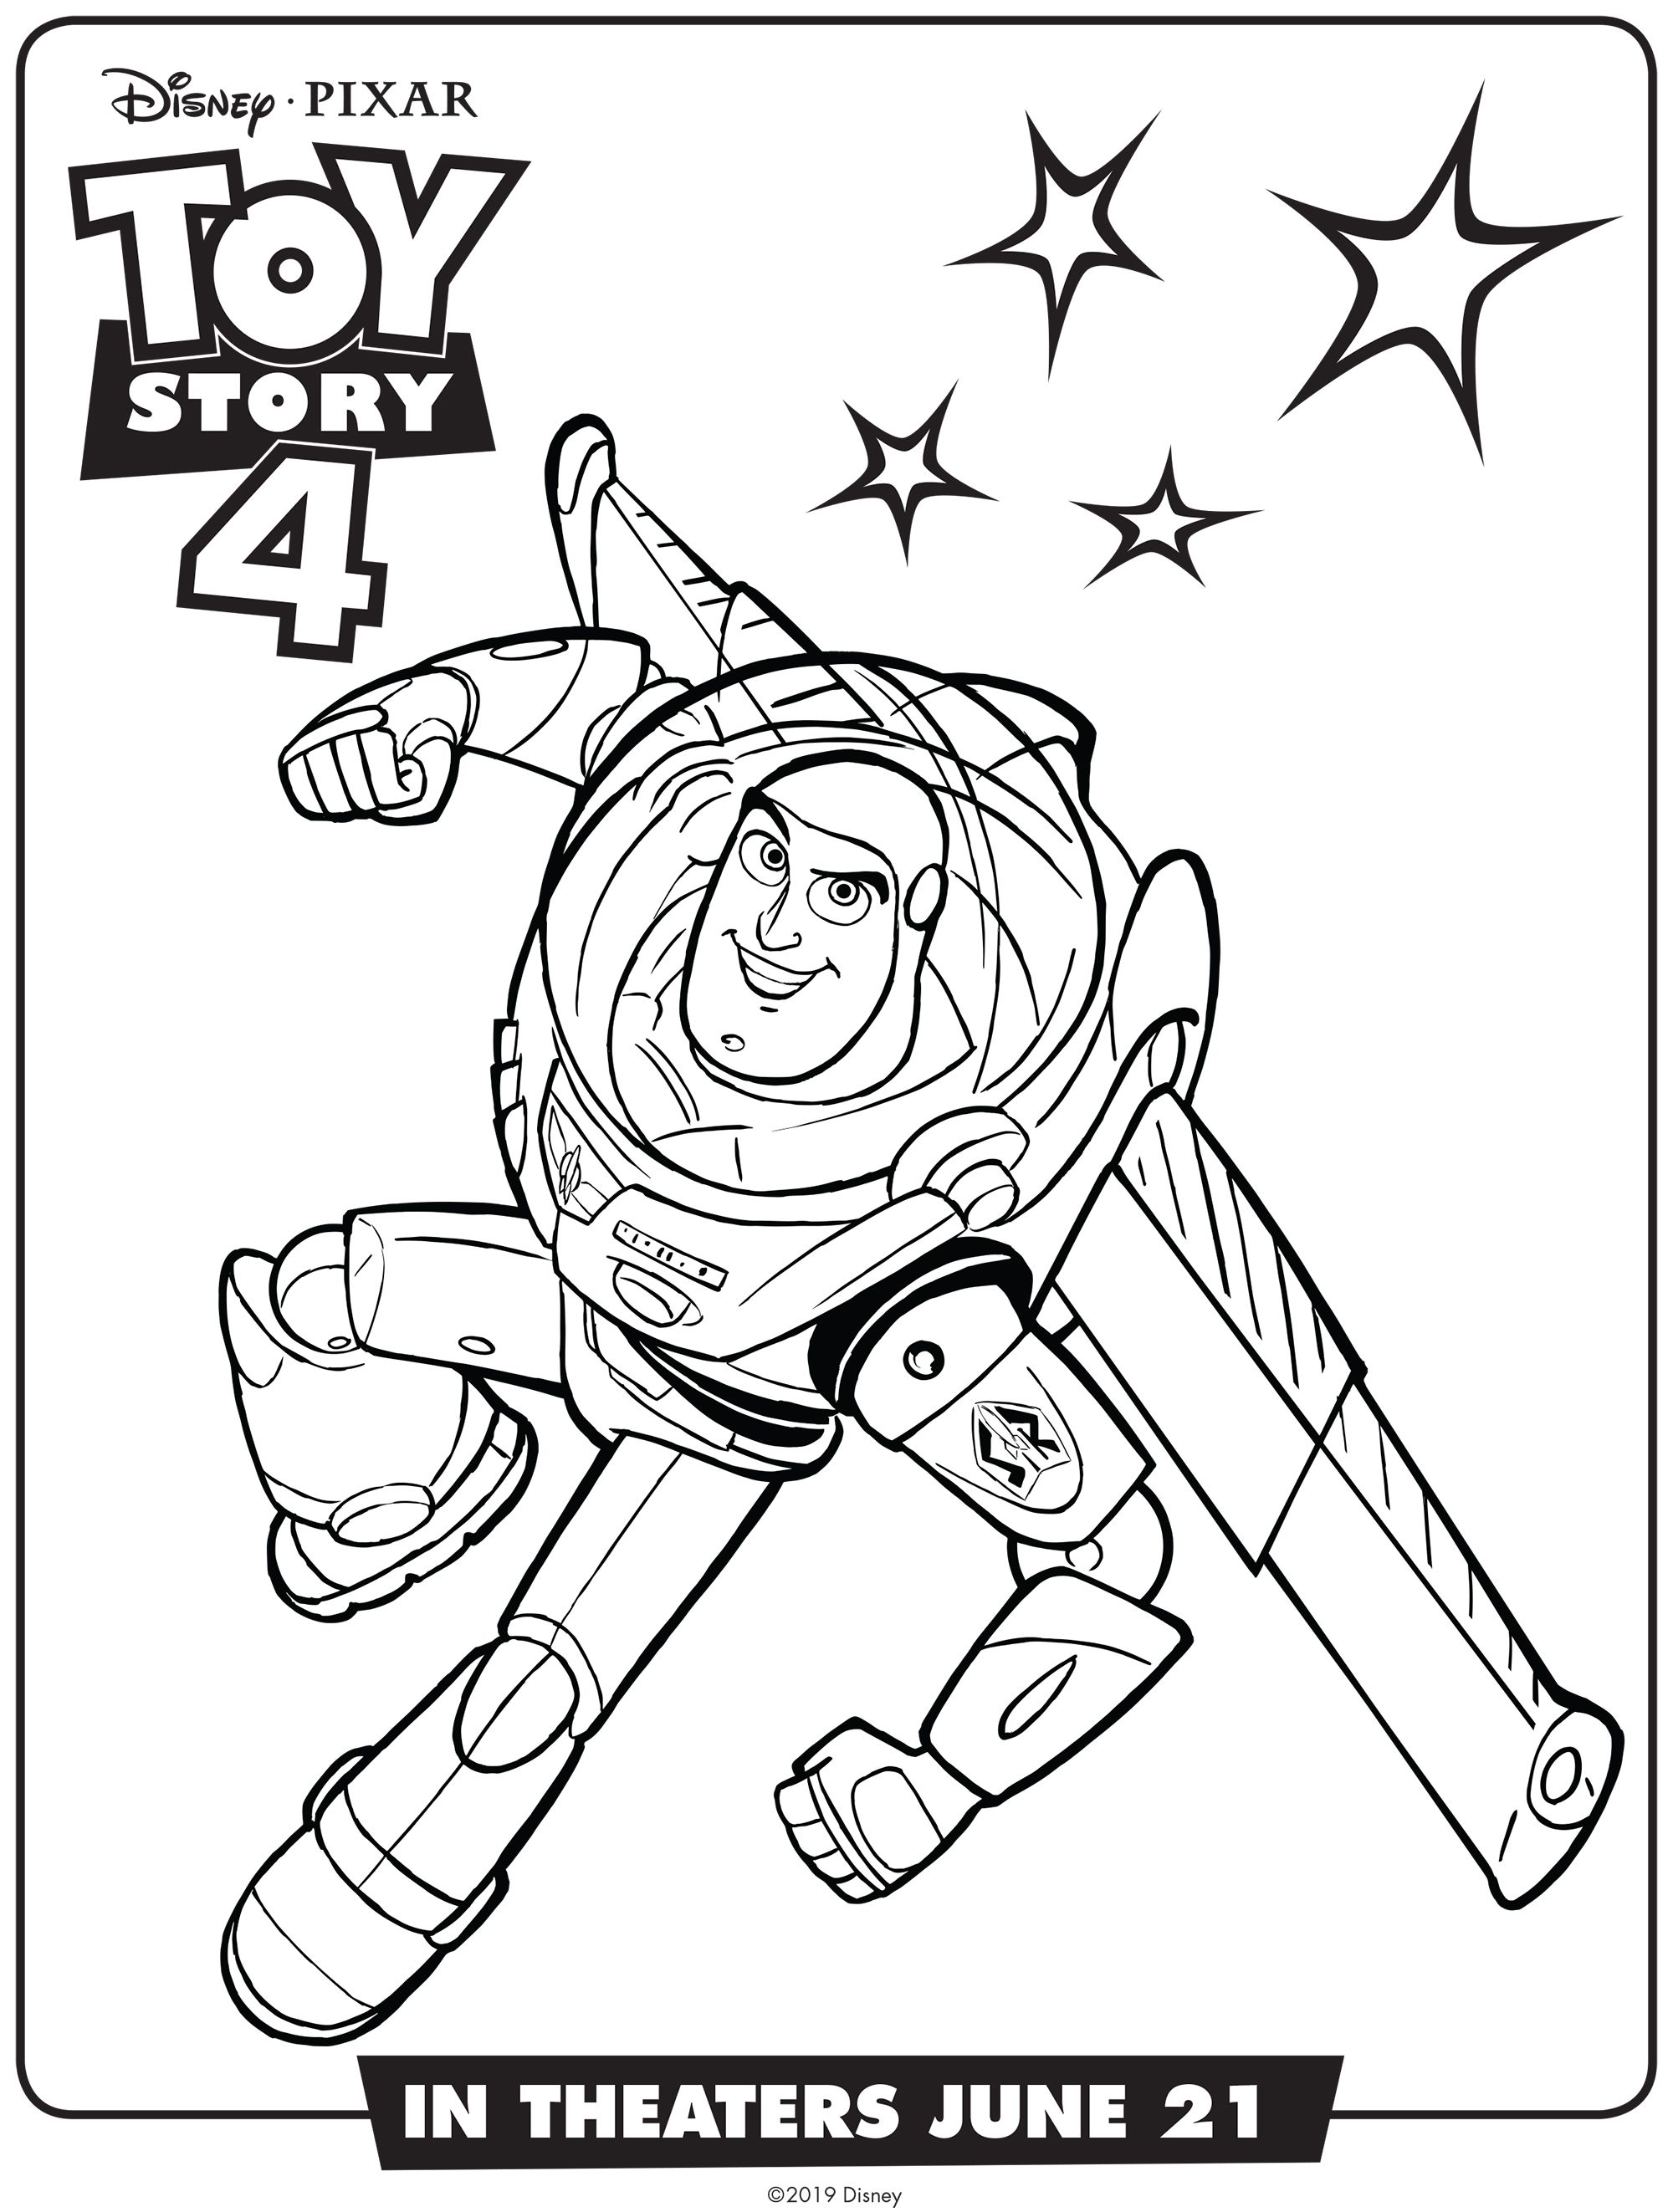 Toy Story Coloring Pages + Toy Story of Terror | 2645x2000